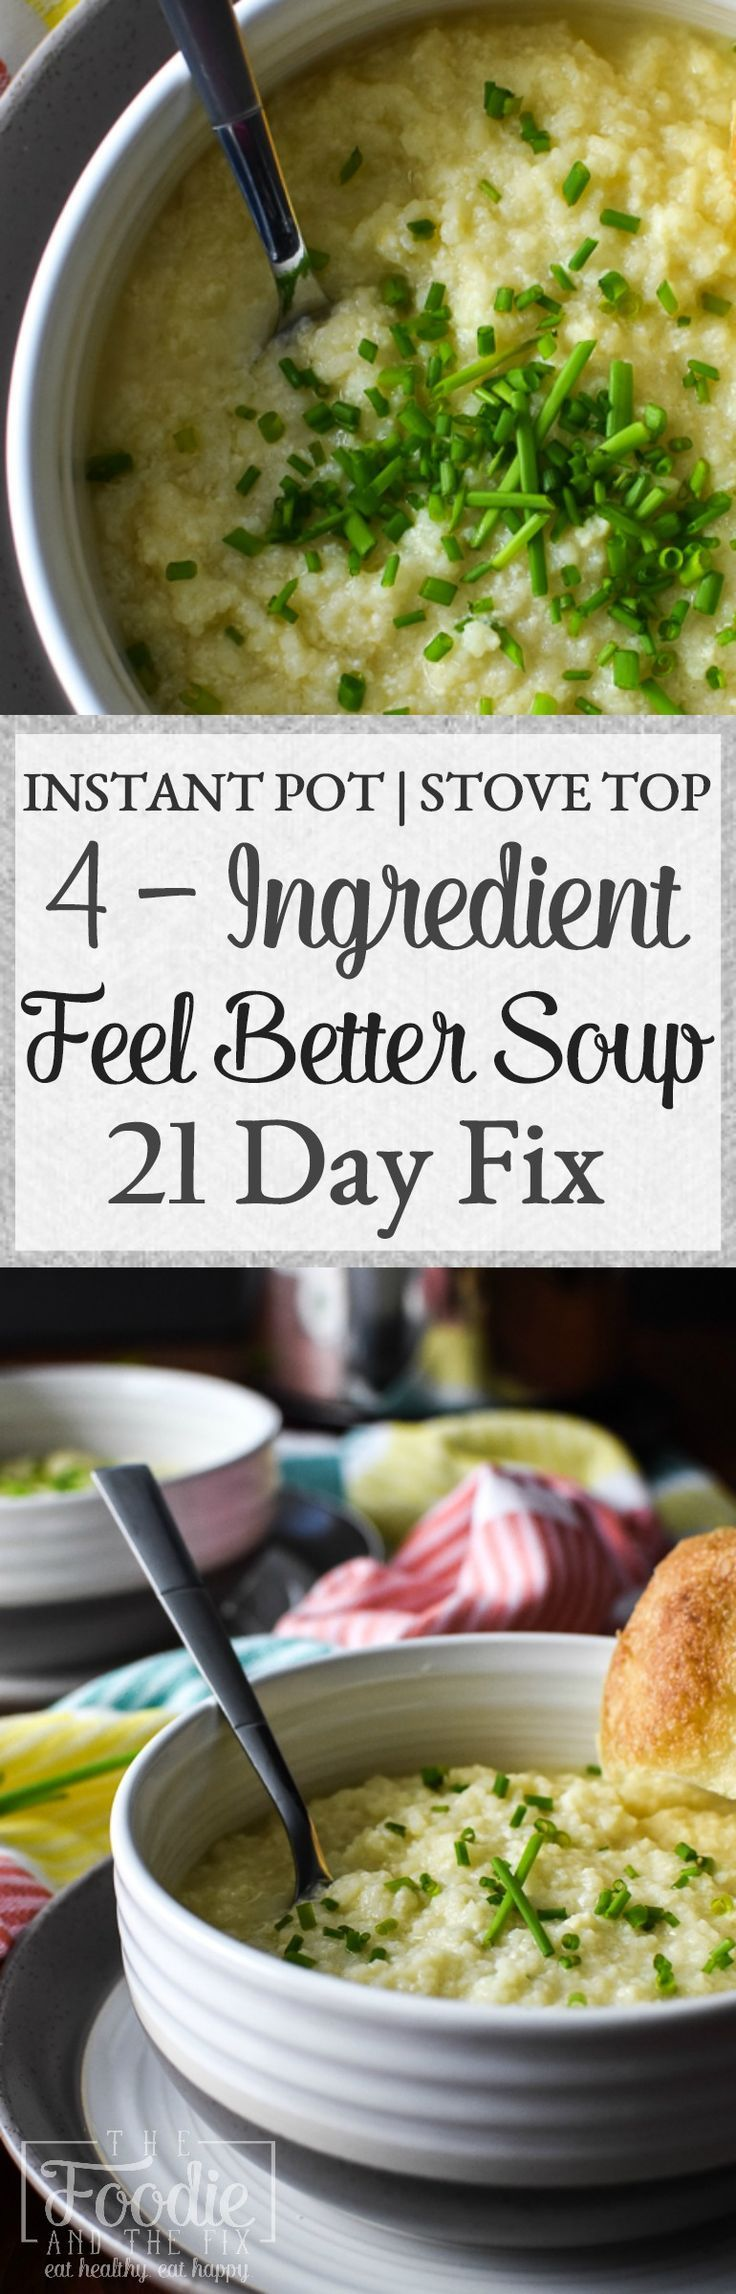 This easy, quick, 21 Day Fix approved 4-Ingredient Feel Better Soup is the most deliciously comforting thing that you can make with four ingredients. Comes together in about 10 minutes and can be made in an Instant Pot or on the stove top! #instantpot #21